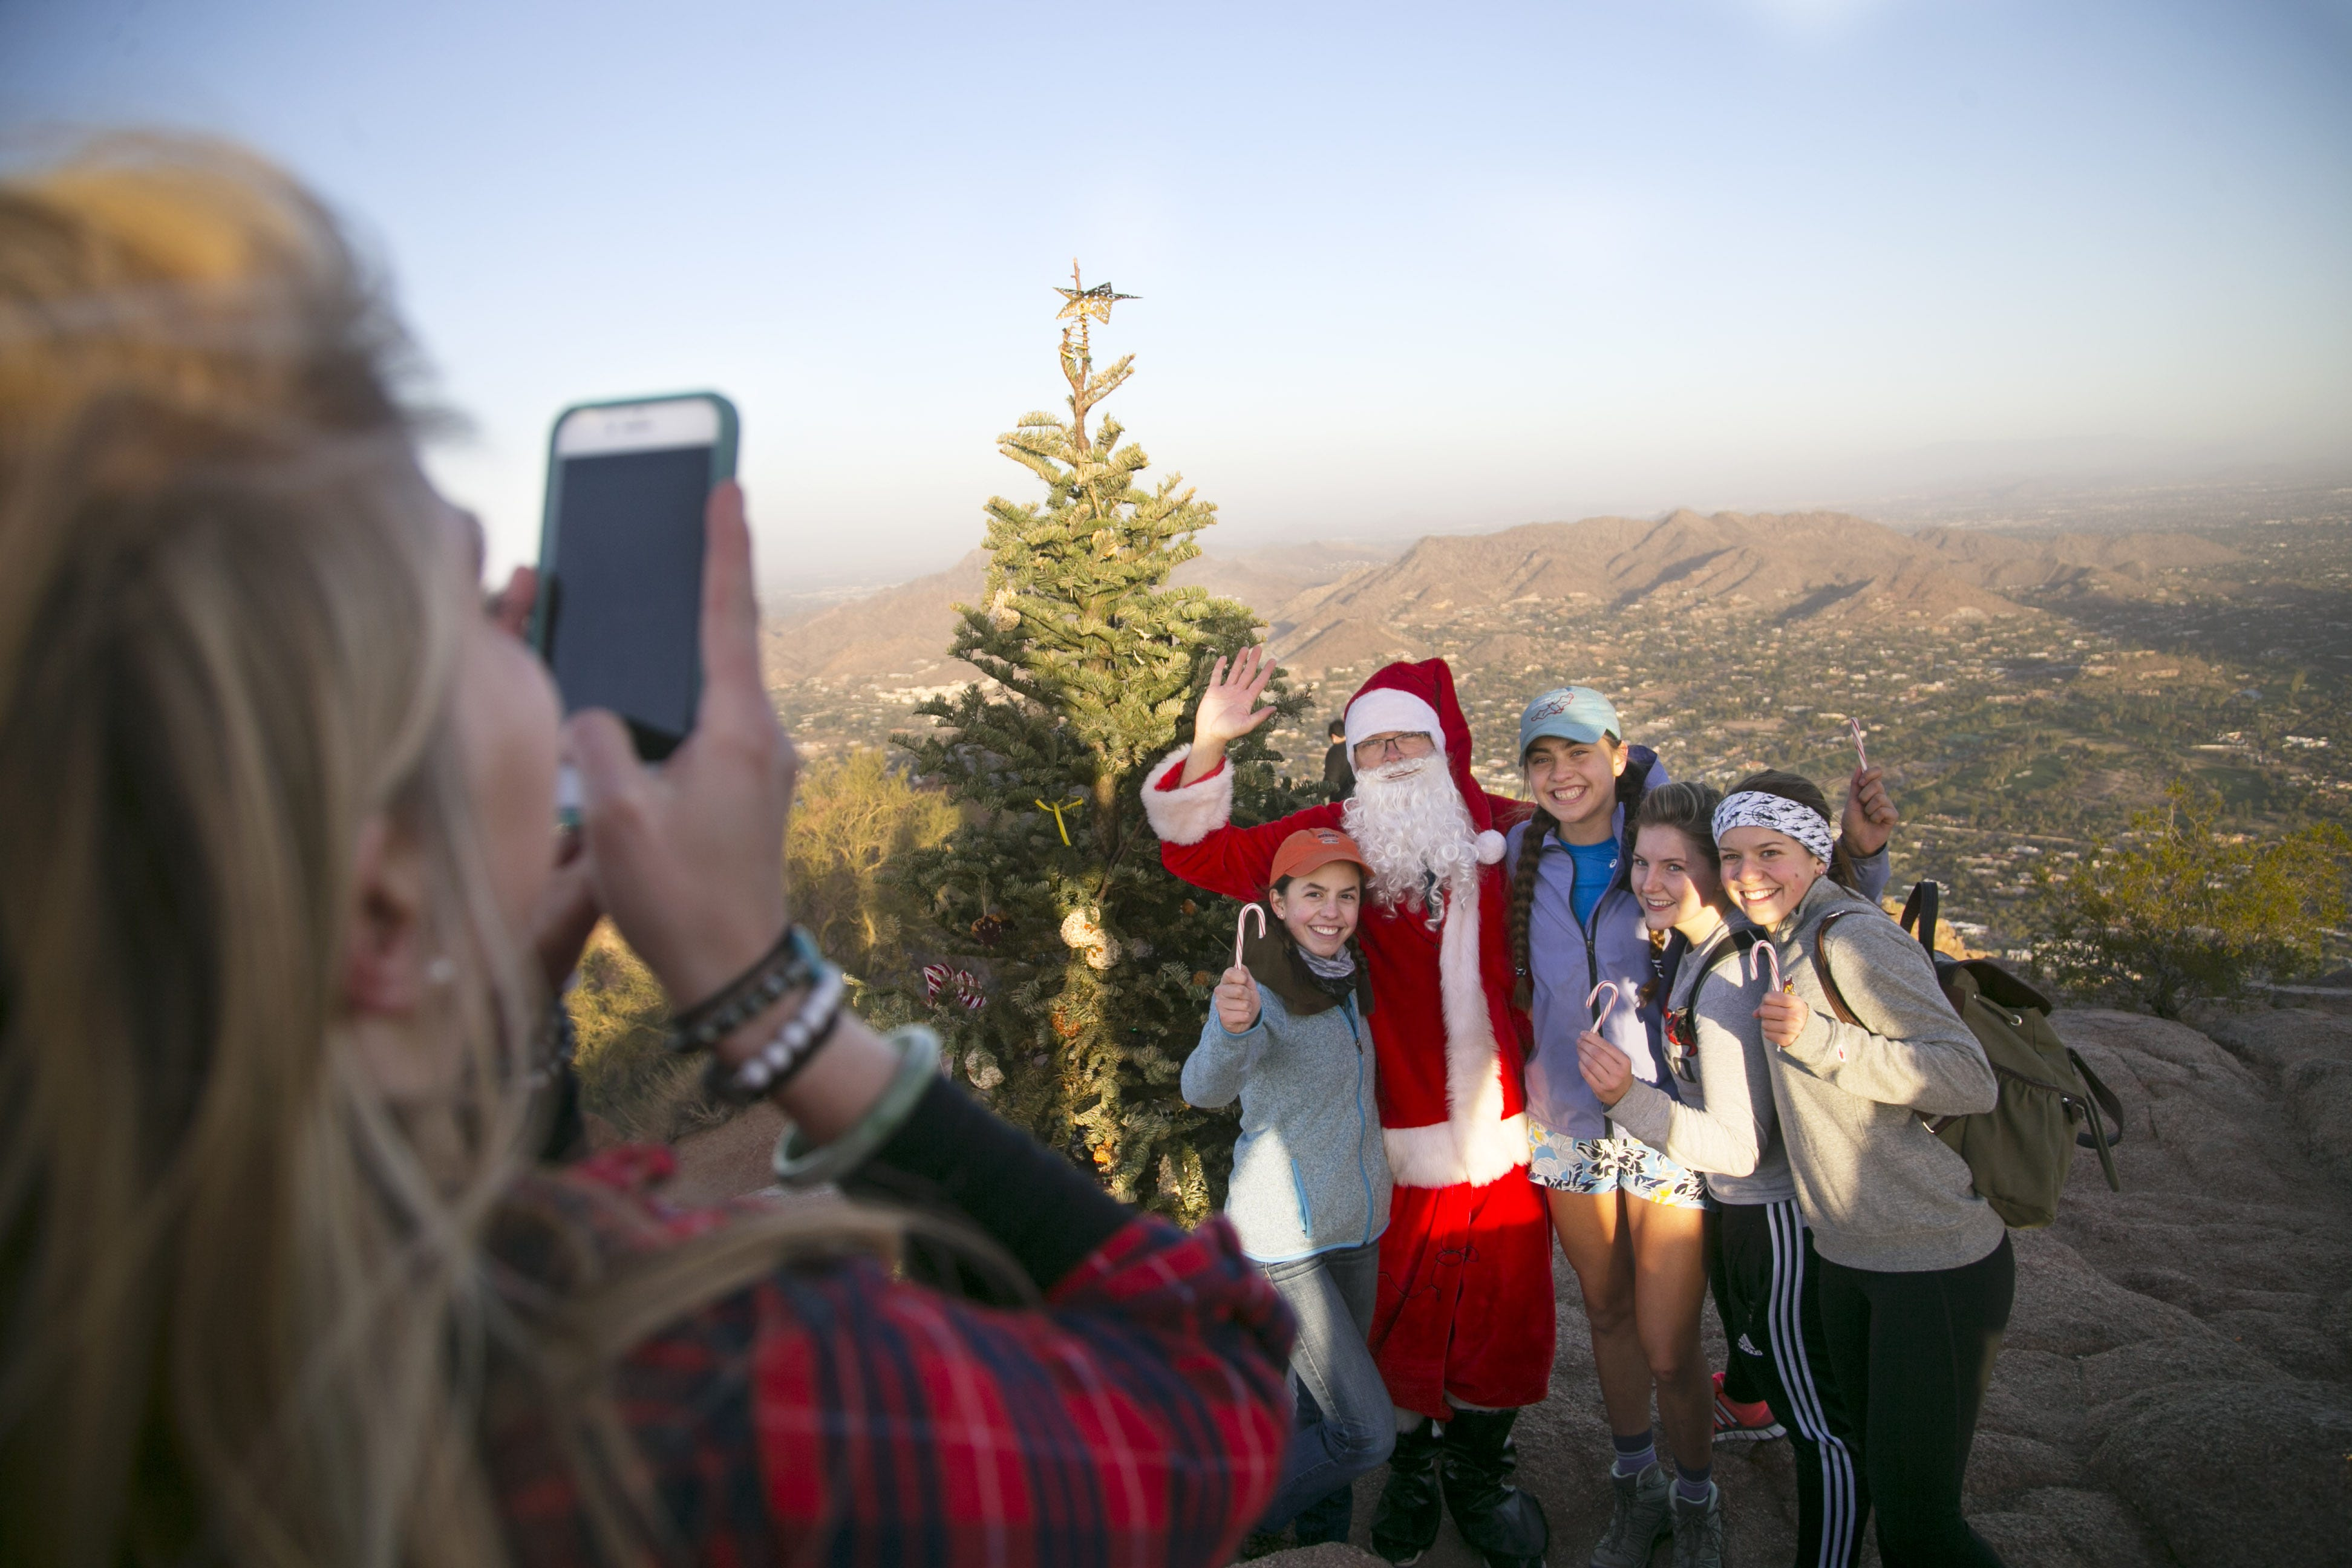 Speak up: Are you for or against a Christmas tree atop Camelback Mountain?